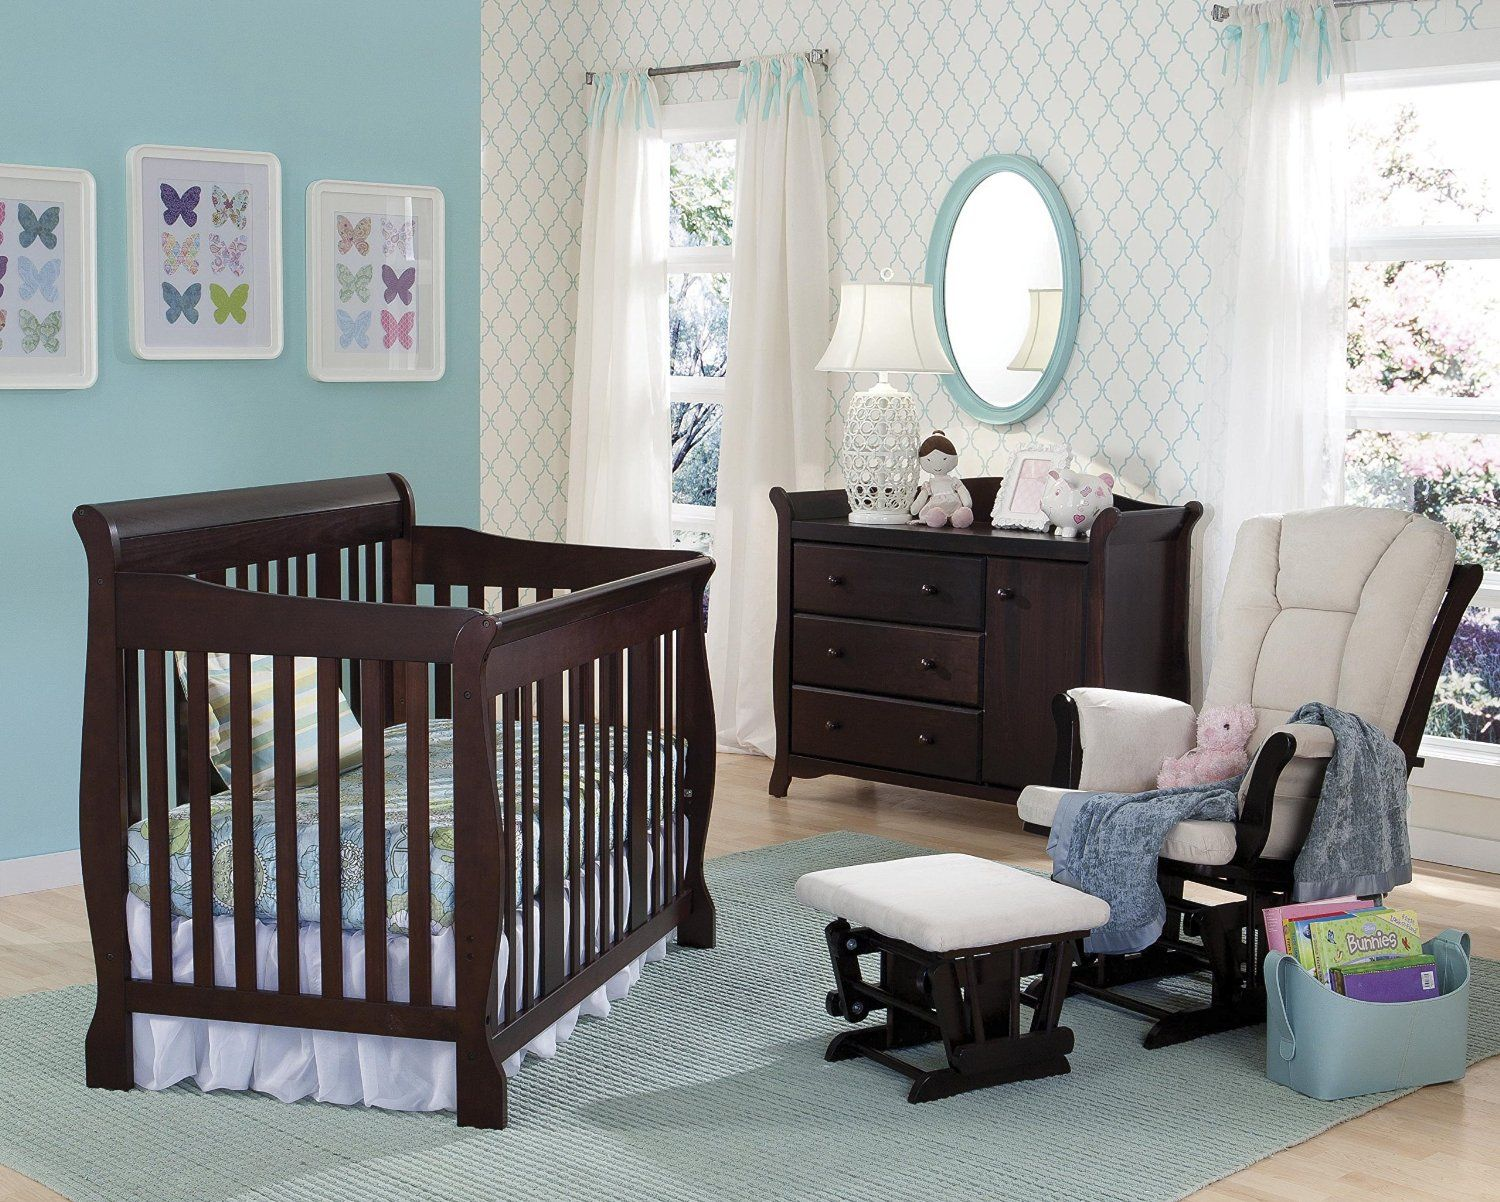 cribs design best chocolate white colors picture folding hotel nursery top modern baby wood rated crib pice amusing nice images with and